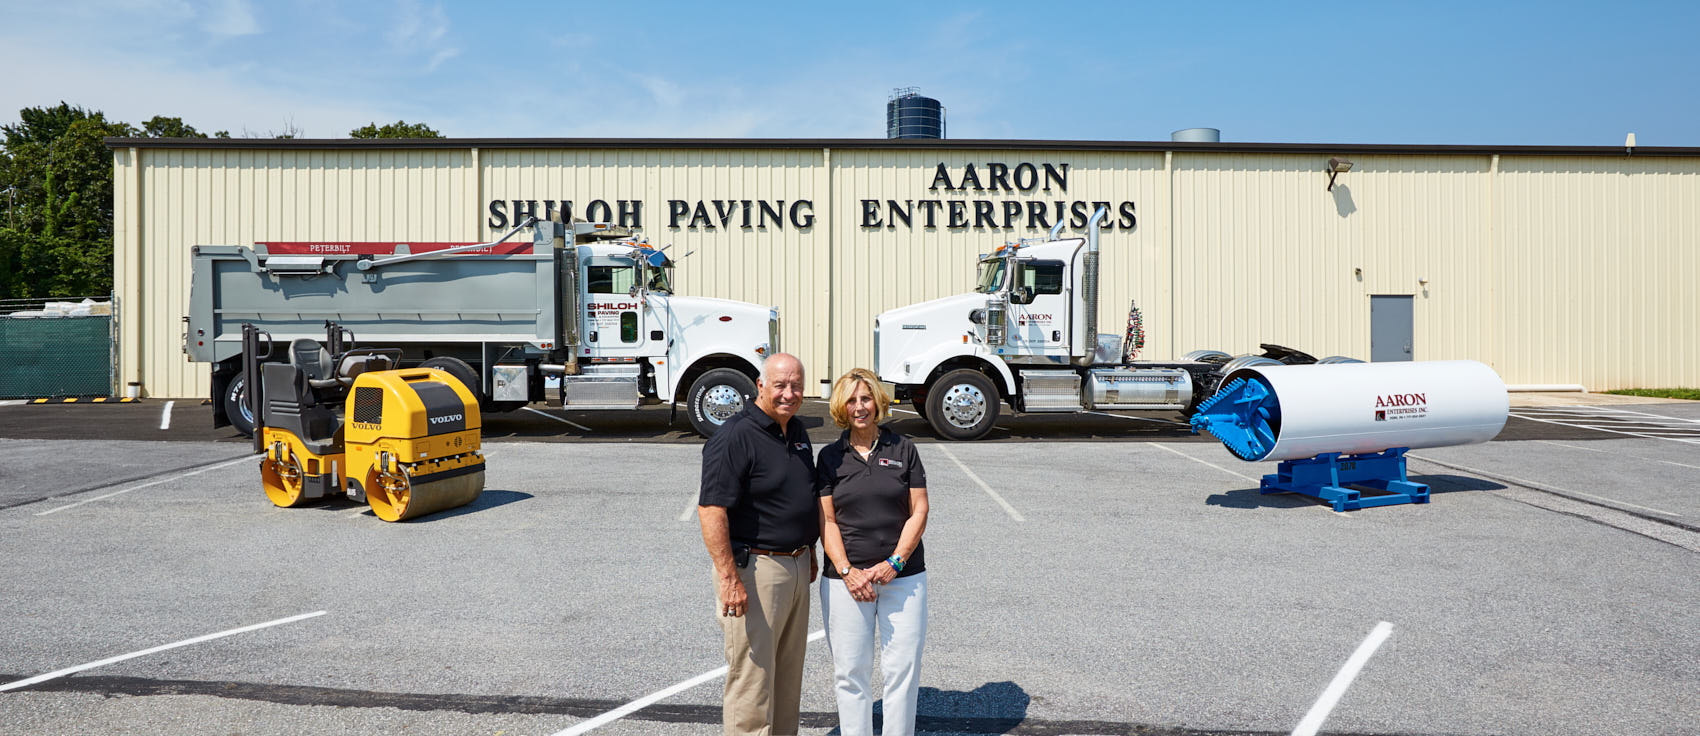 Aaron Enterprises